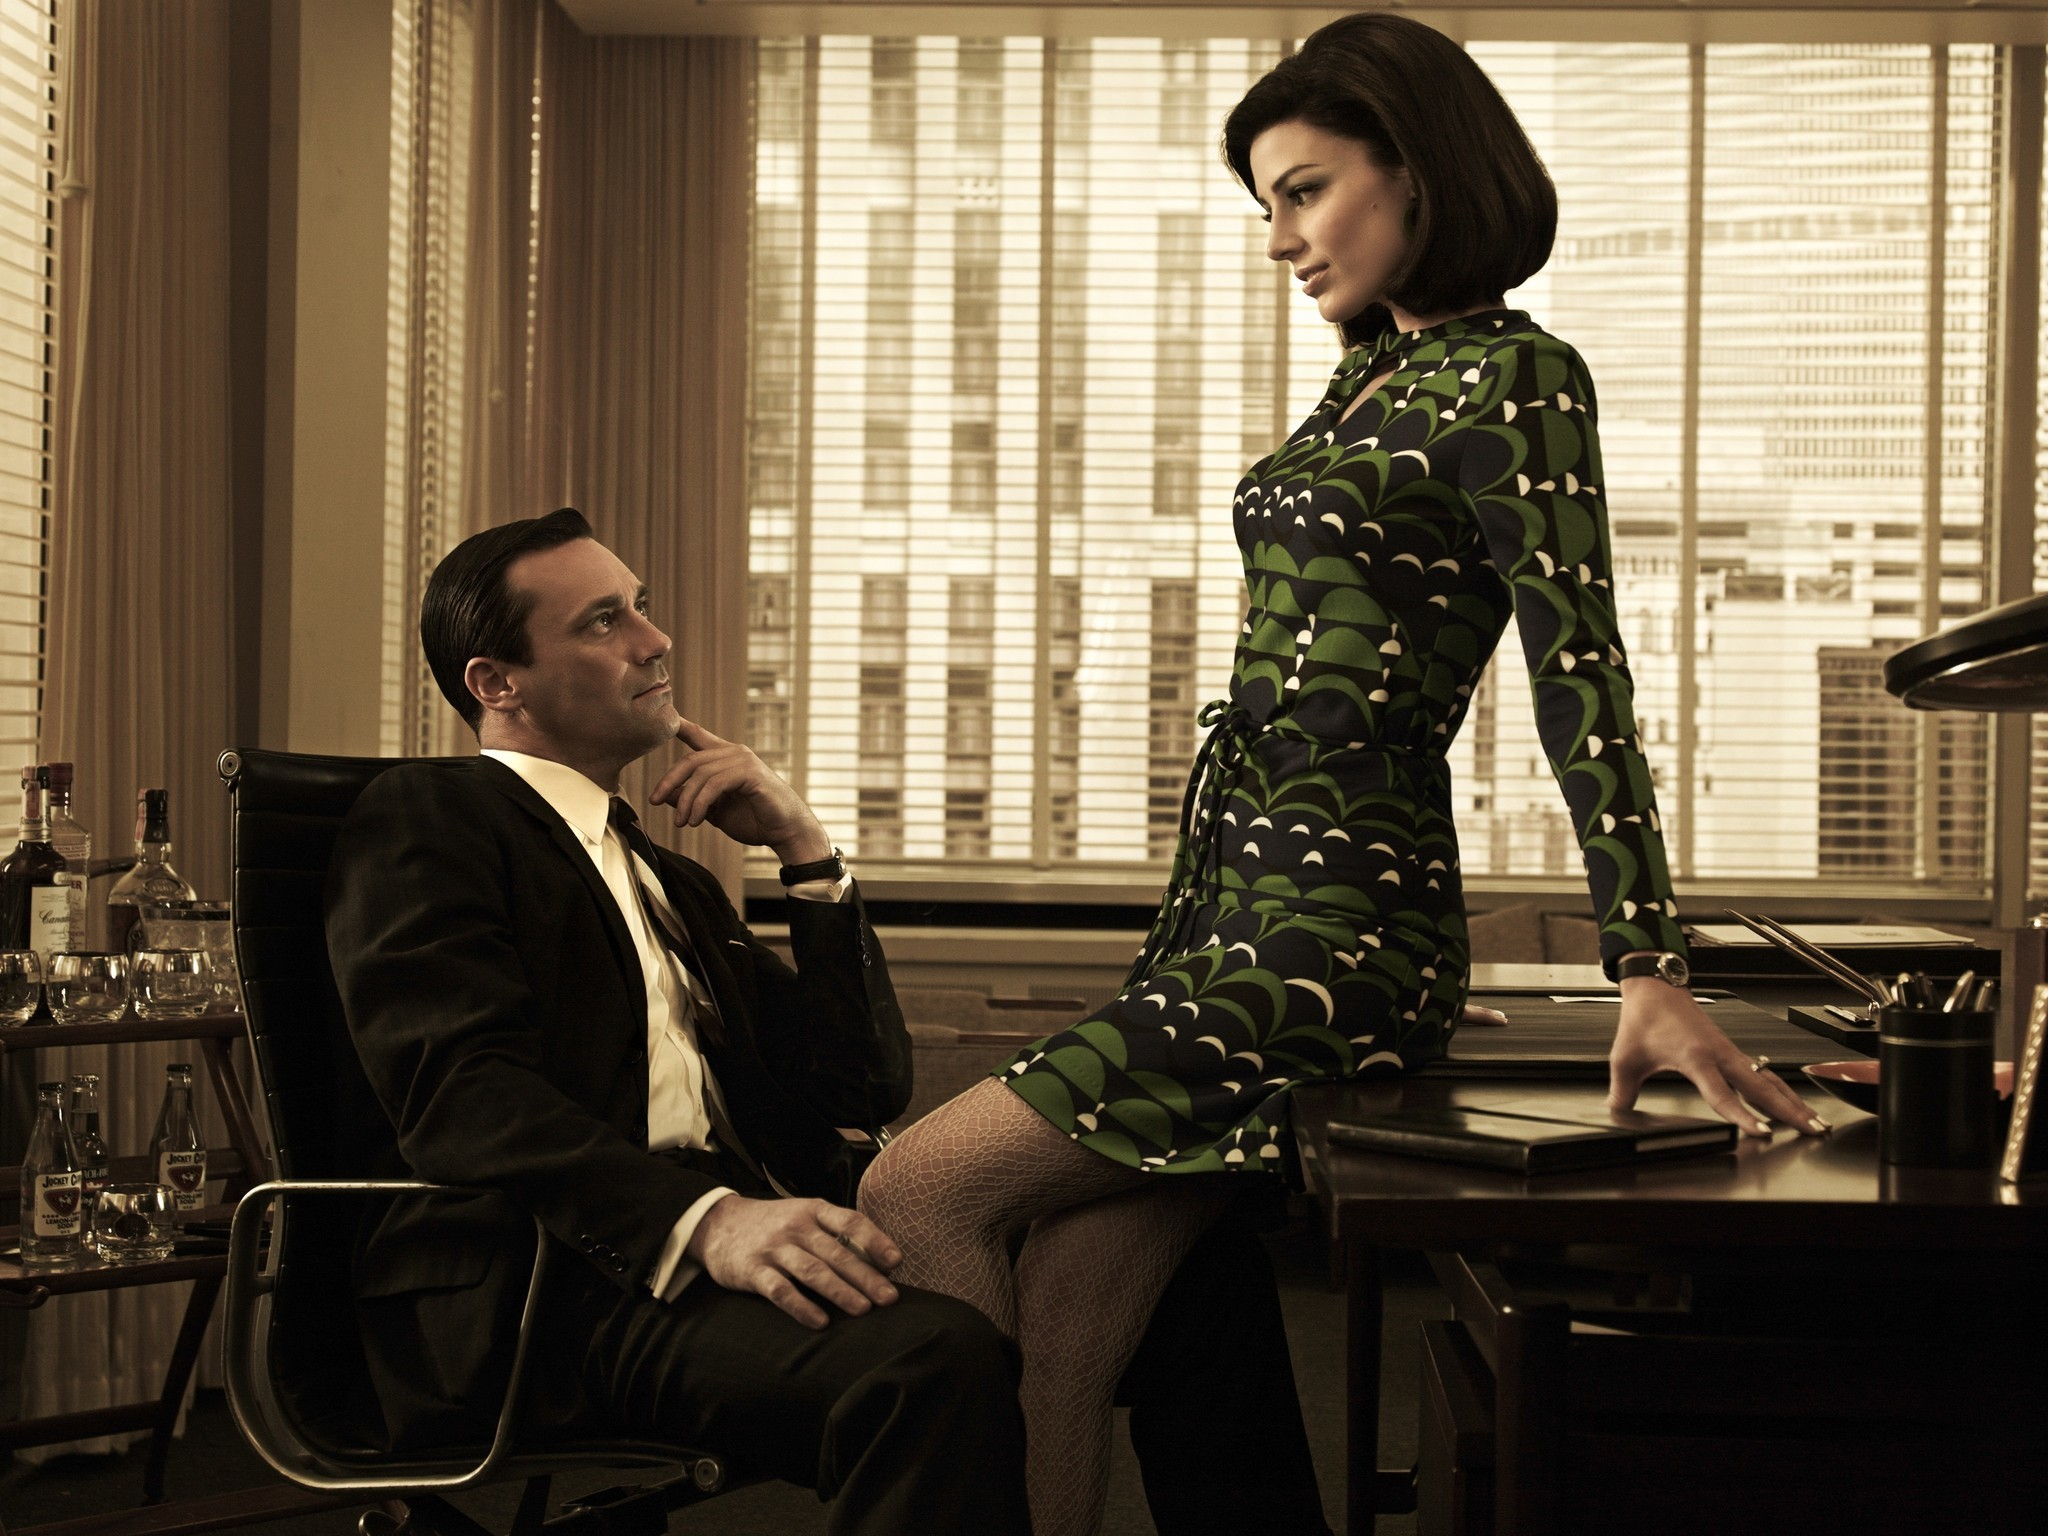 Discussion on this topic: The 5 Best Mad Men' BeautyMoments, the-5-best-mad-men-beautymoments/